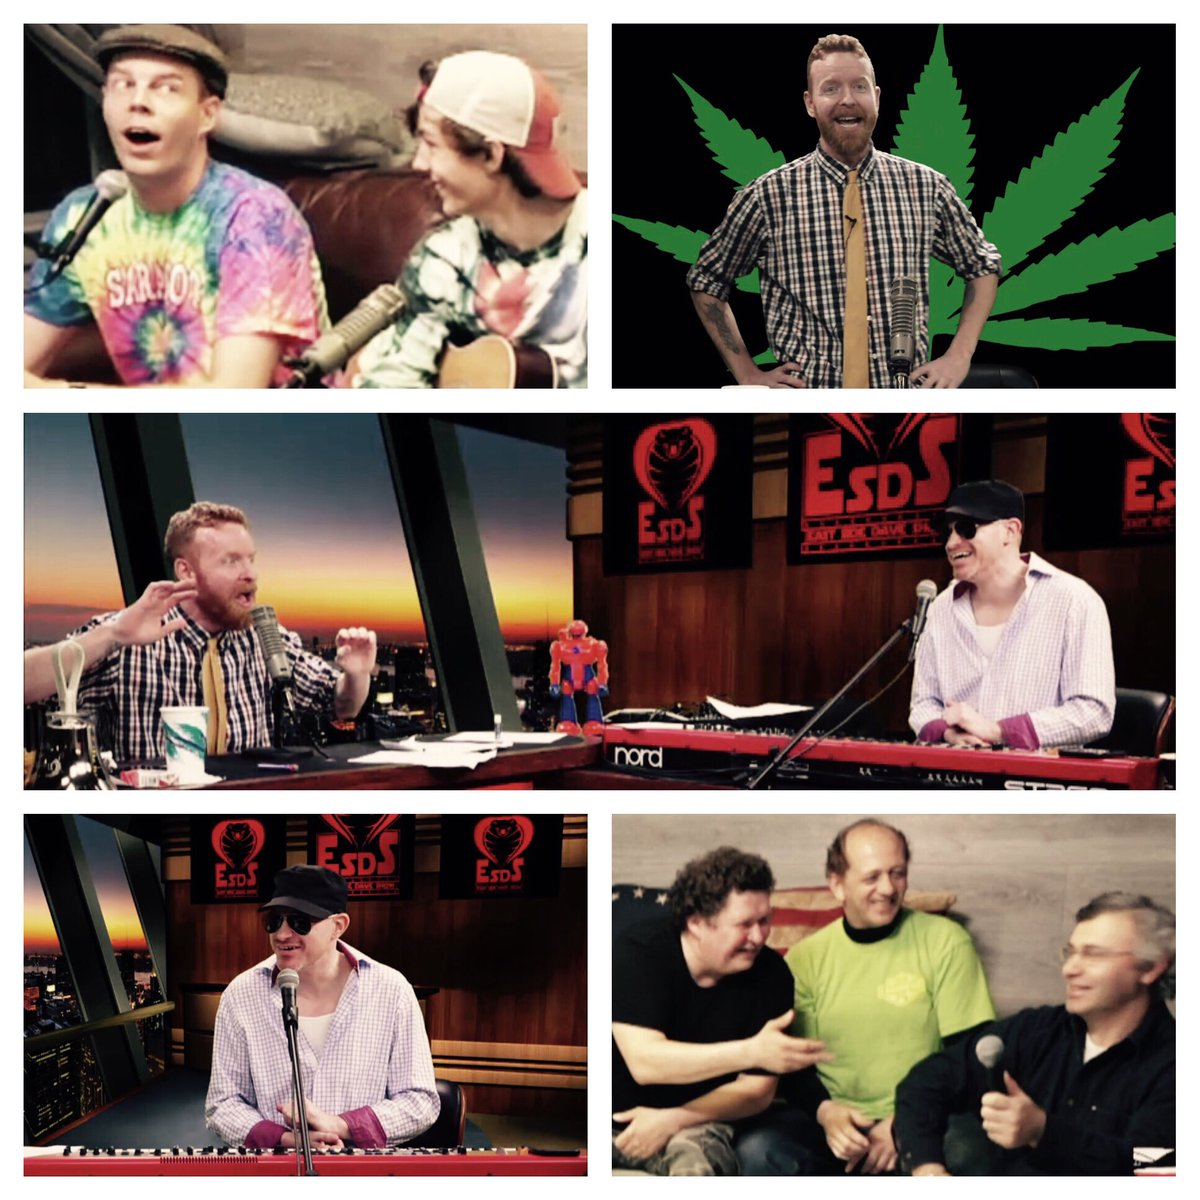 A magical, new @EastSideDave Show is NOW up on https://t.co/HjqehtbnMu...